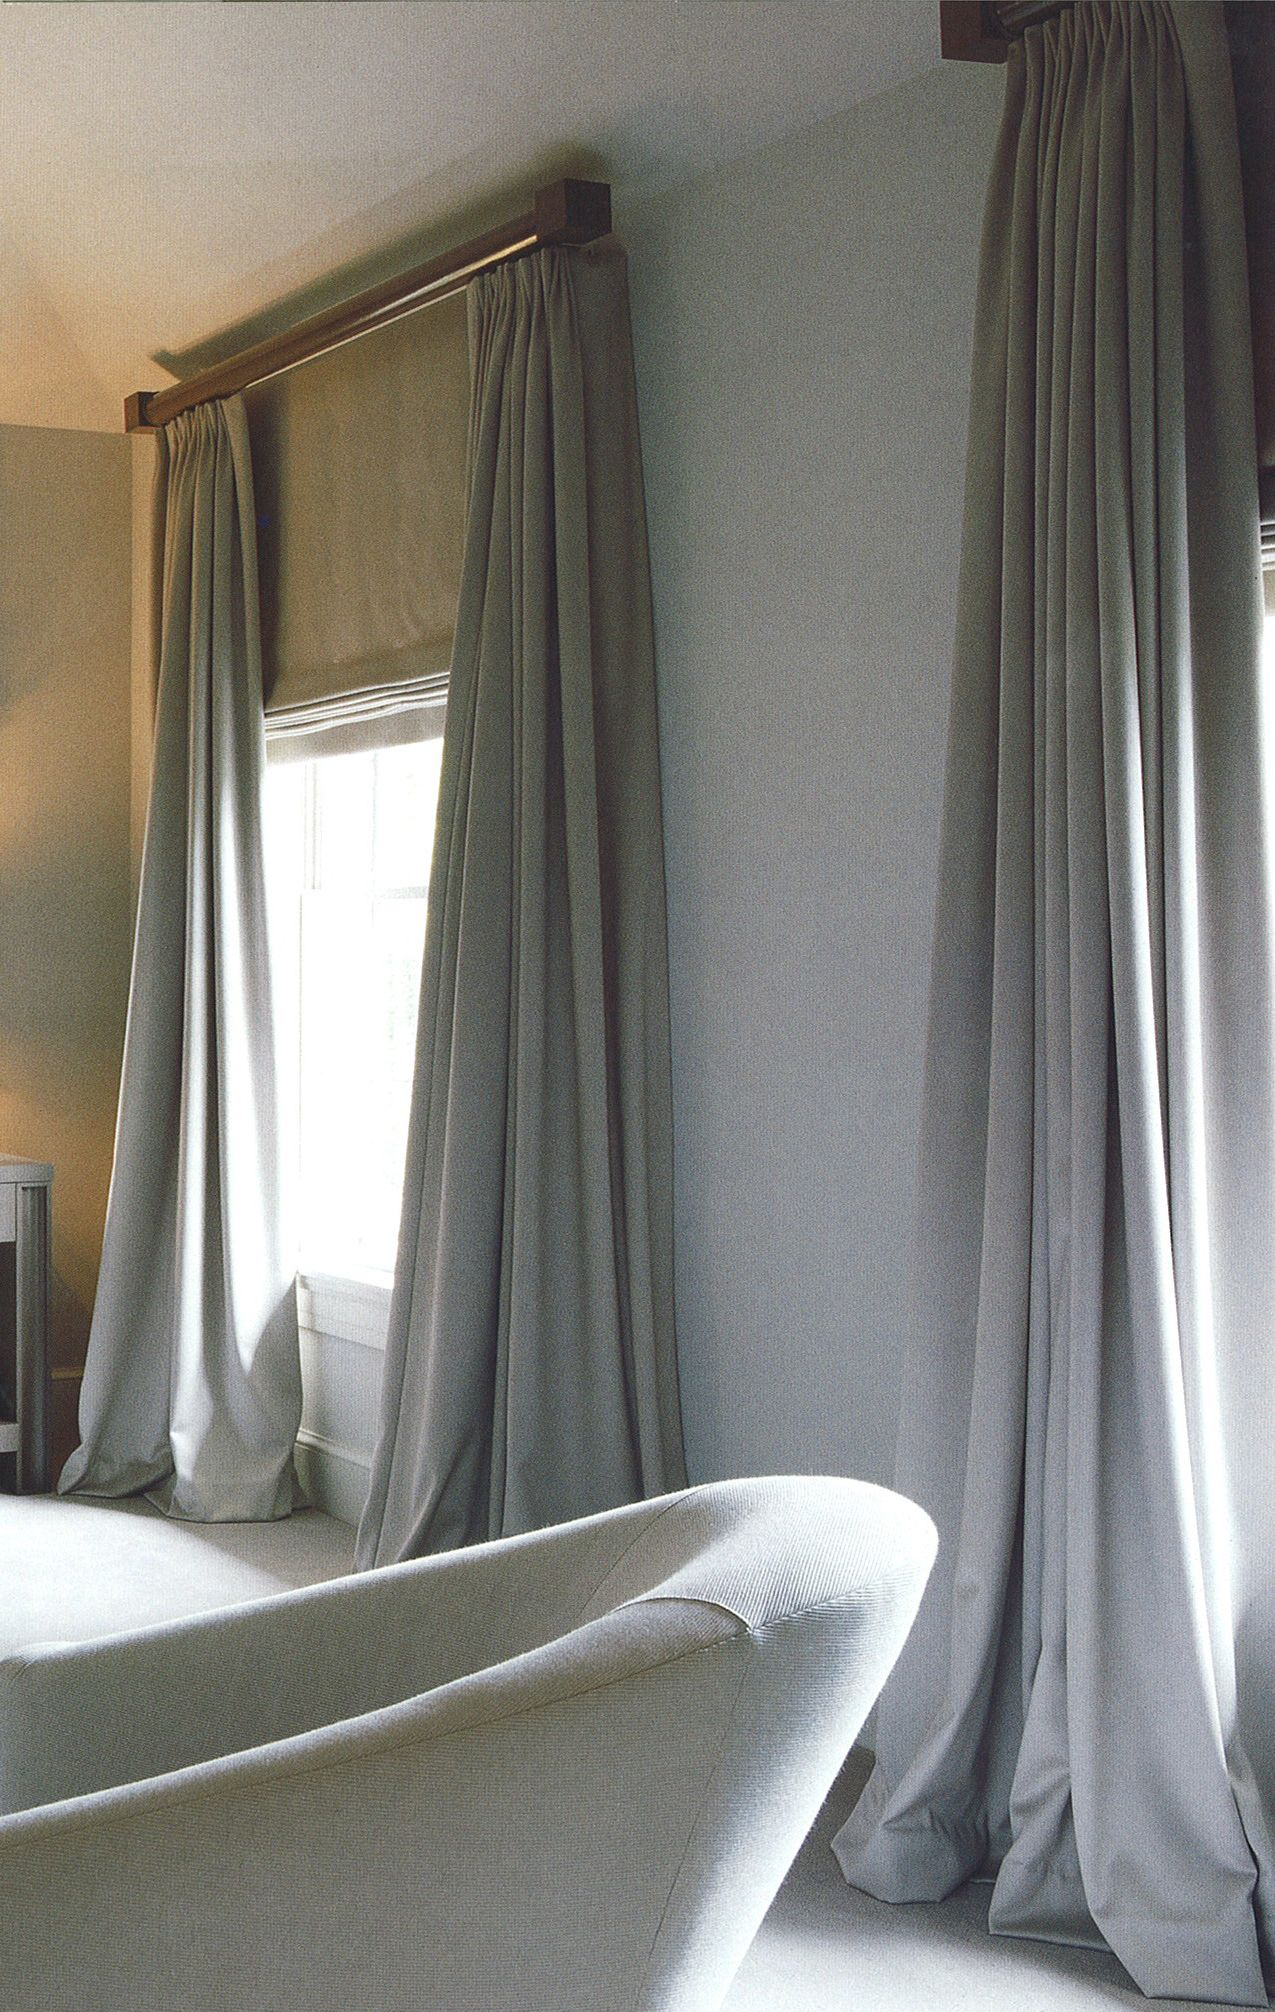 Blinds and curtains combination bedroom - Luxury But Plain Curtains And Matching Blinds They Will Be A Big Part Of The